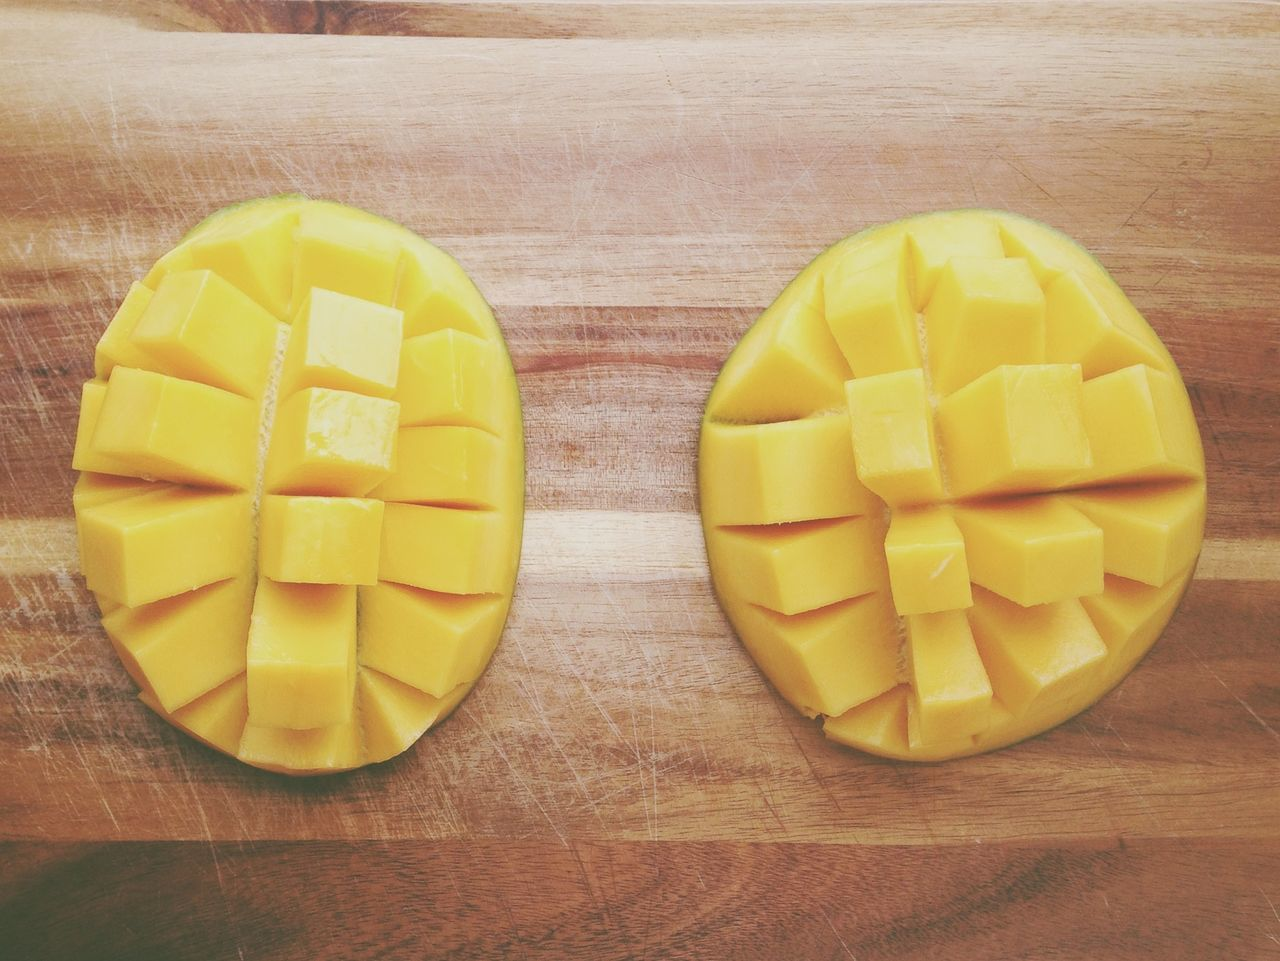 yaaaay some Mango hedgehogs <3 - Fruit Yummy Eat More Fruit Geometric Shapes Precision Food Porn Awards